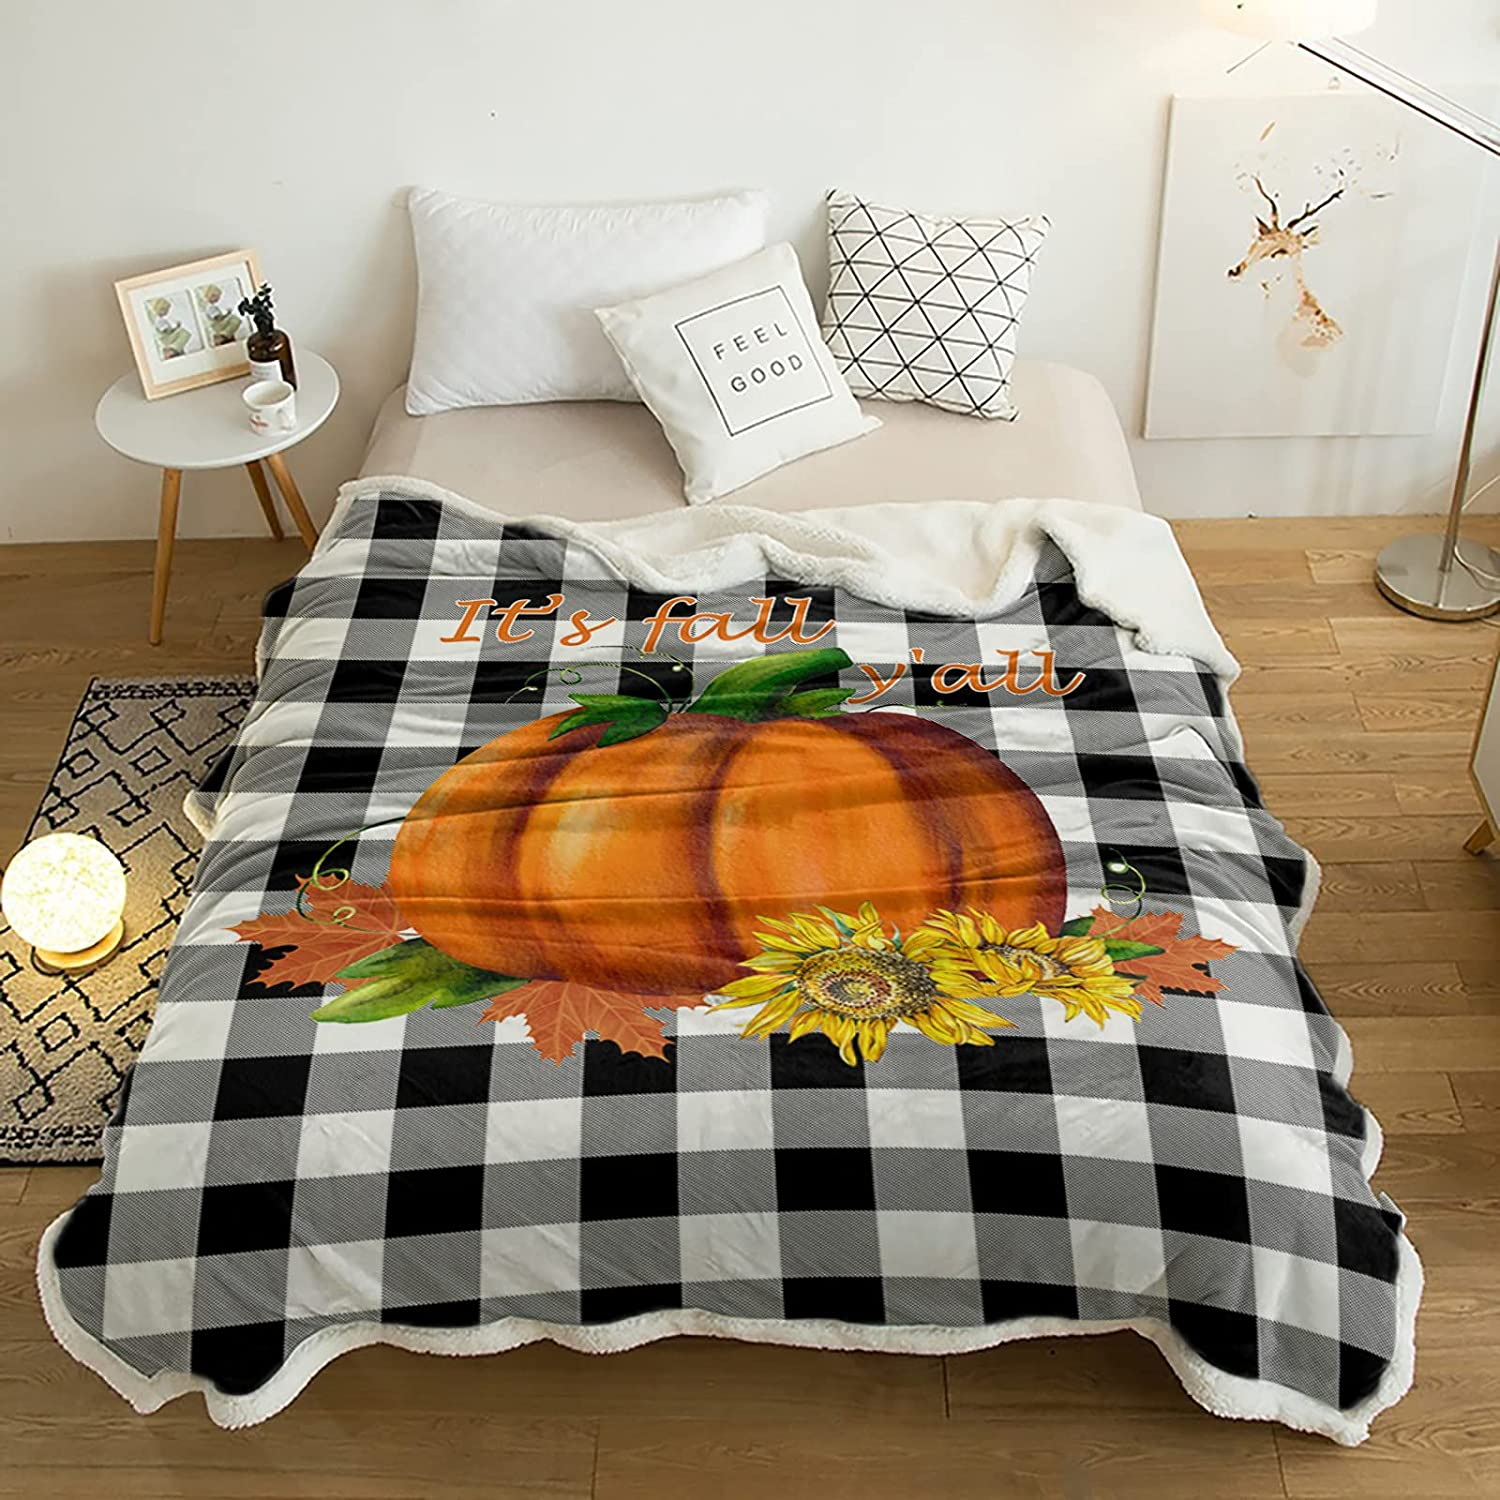 Sherpa Fleece low-pricing Throw Blanket on Thanksgiving Sunflowers Pumpkins Max 81% OFF